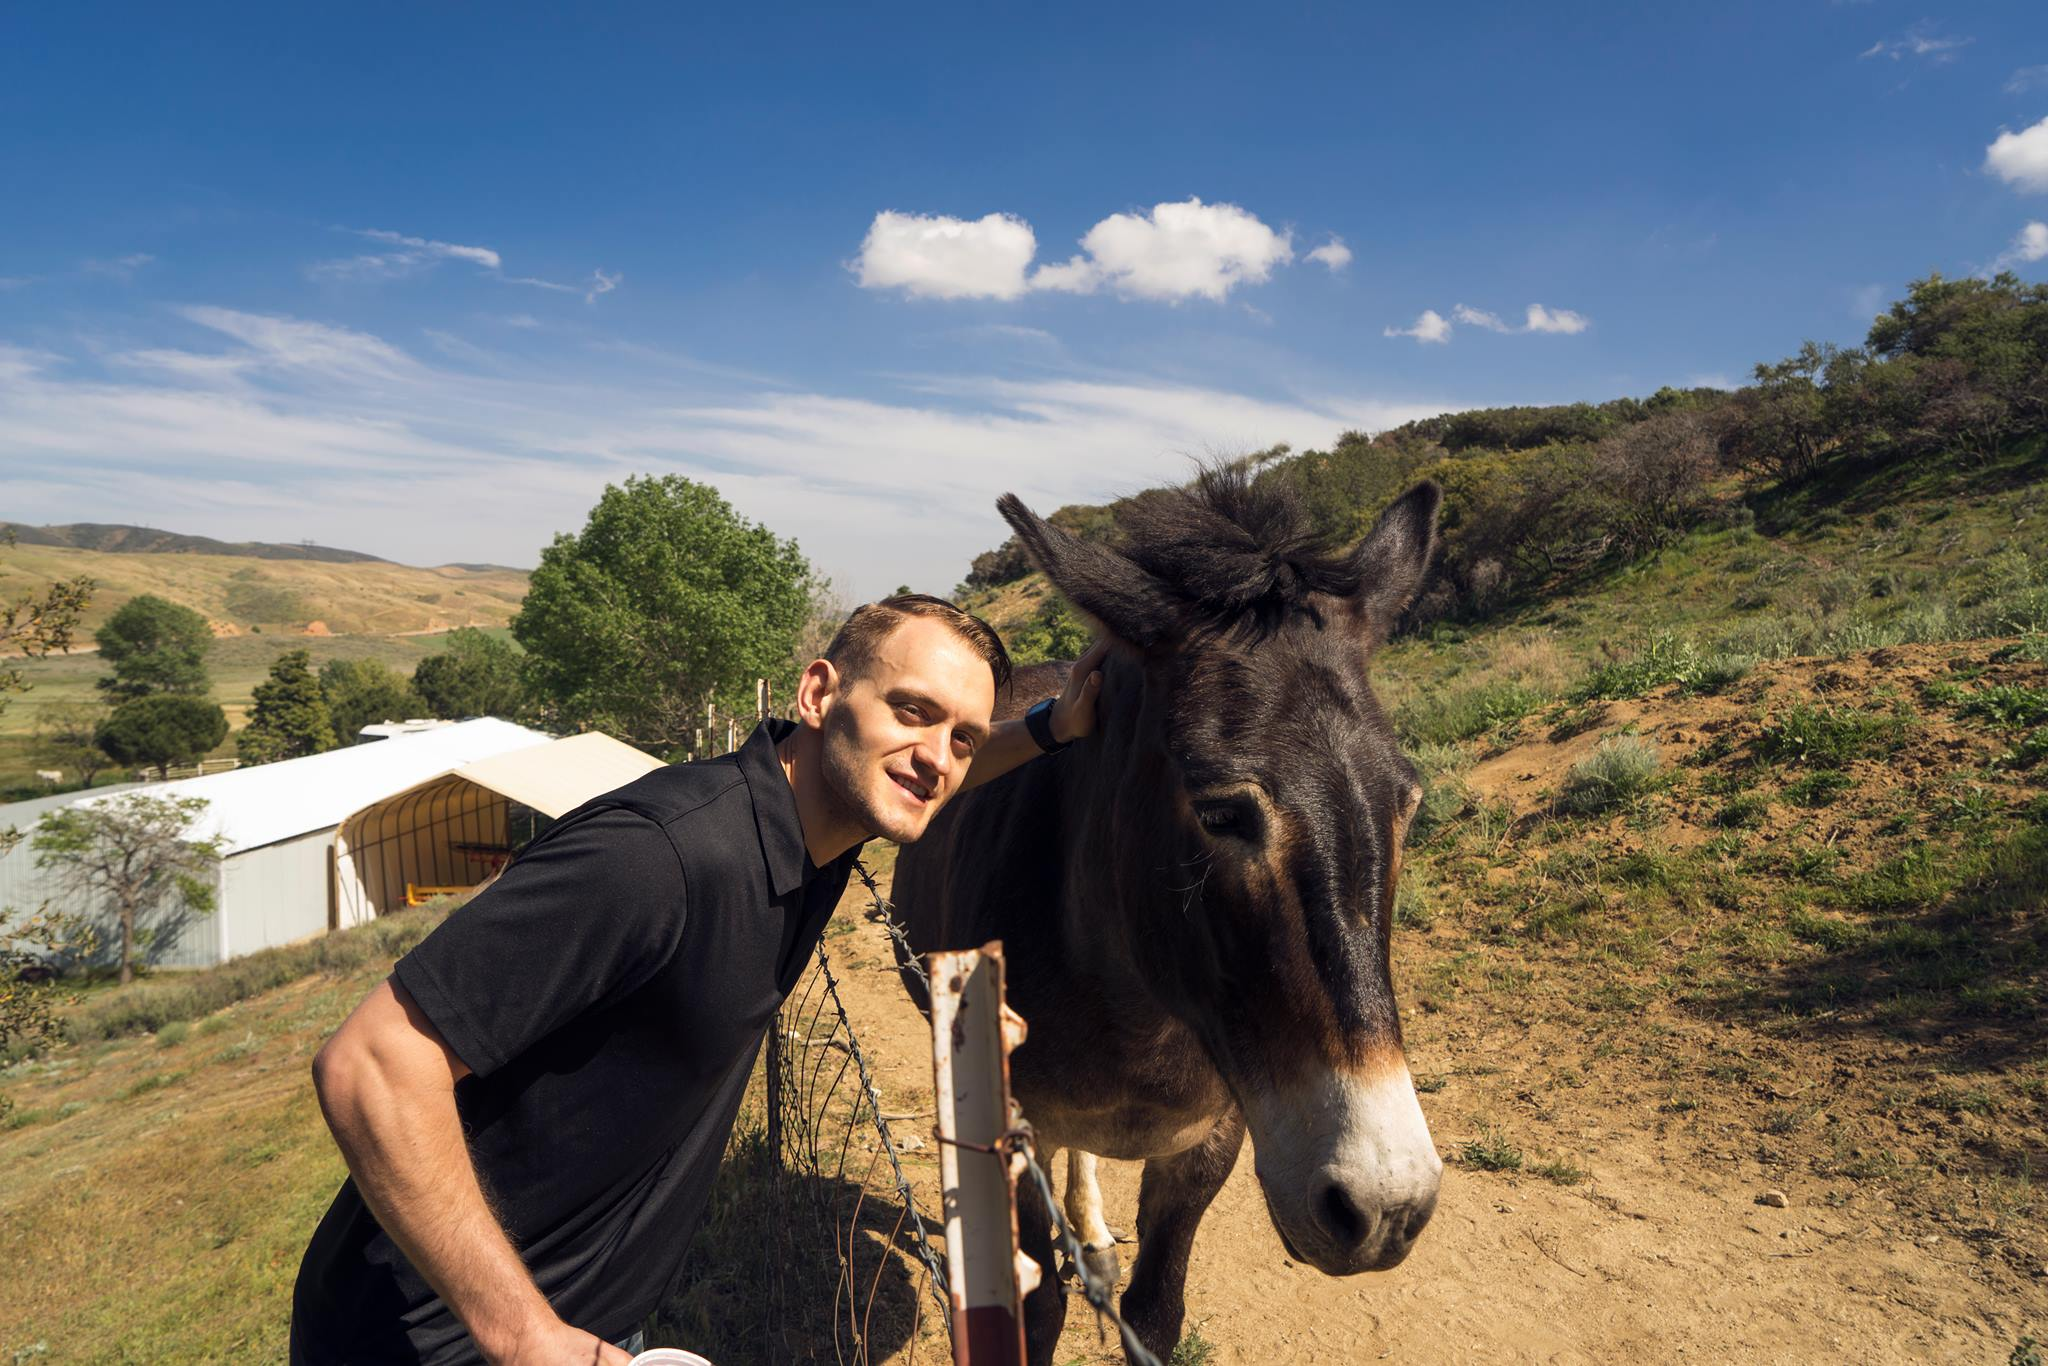 Jason's identical twin hanging with a donkey on Easter at his wife's family party